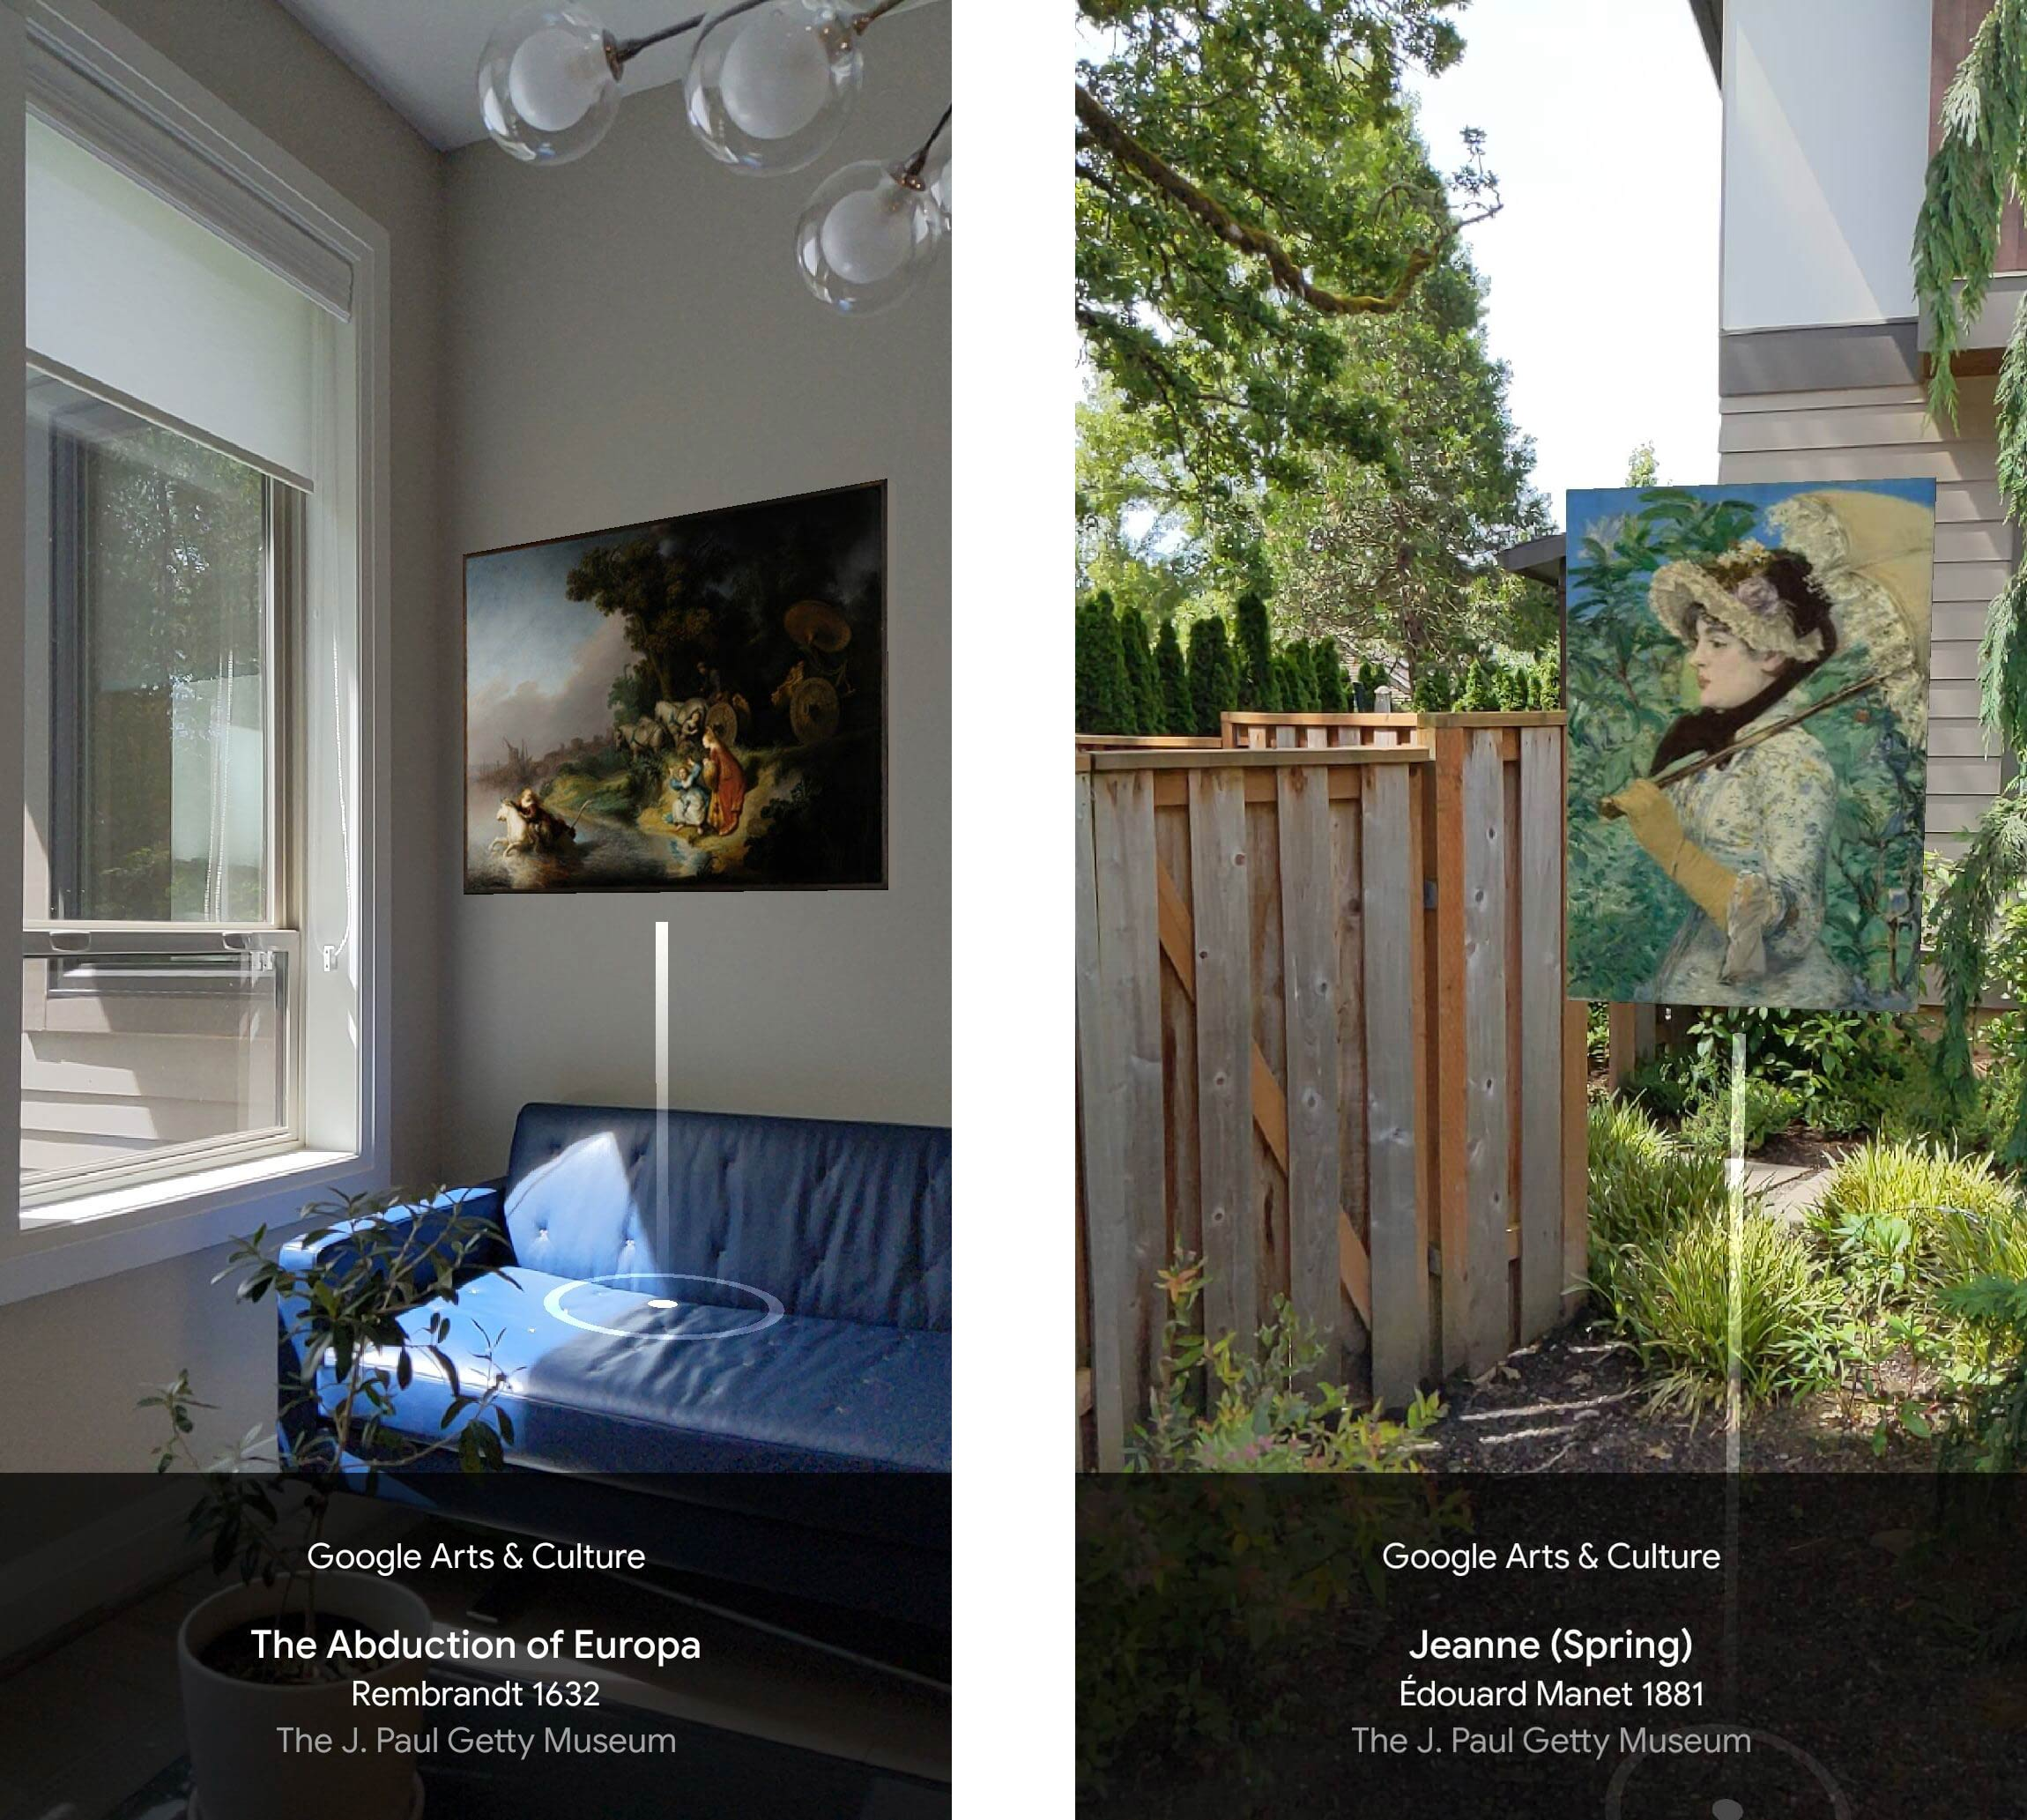 Left: Rembrandt's Abduction of Europa sits on a white wall above a blue leather couch. Right: Manet's Jeanne (Spring) floats in a weedy yard with a vertical-board, wooden fence.